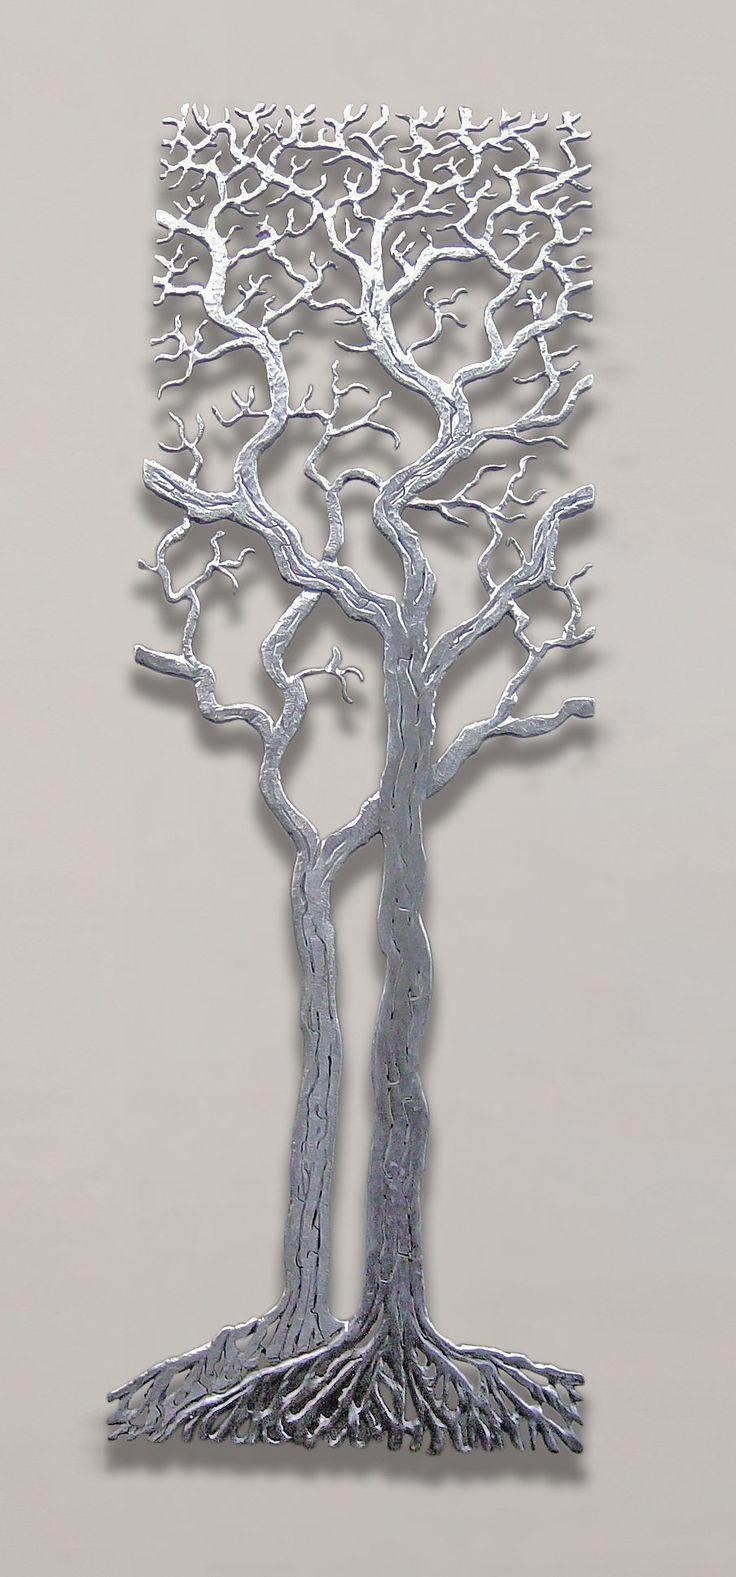 485 Best Tree Art Images On Pinterest | Tree Art, Metal Walls And Regarding Metal Oak Tree Wall Art (Image 1 of 20)